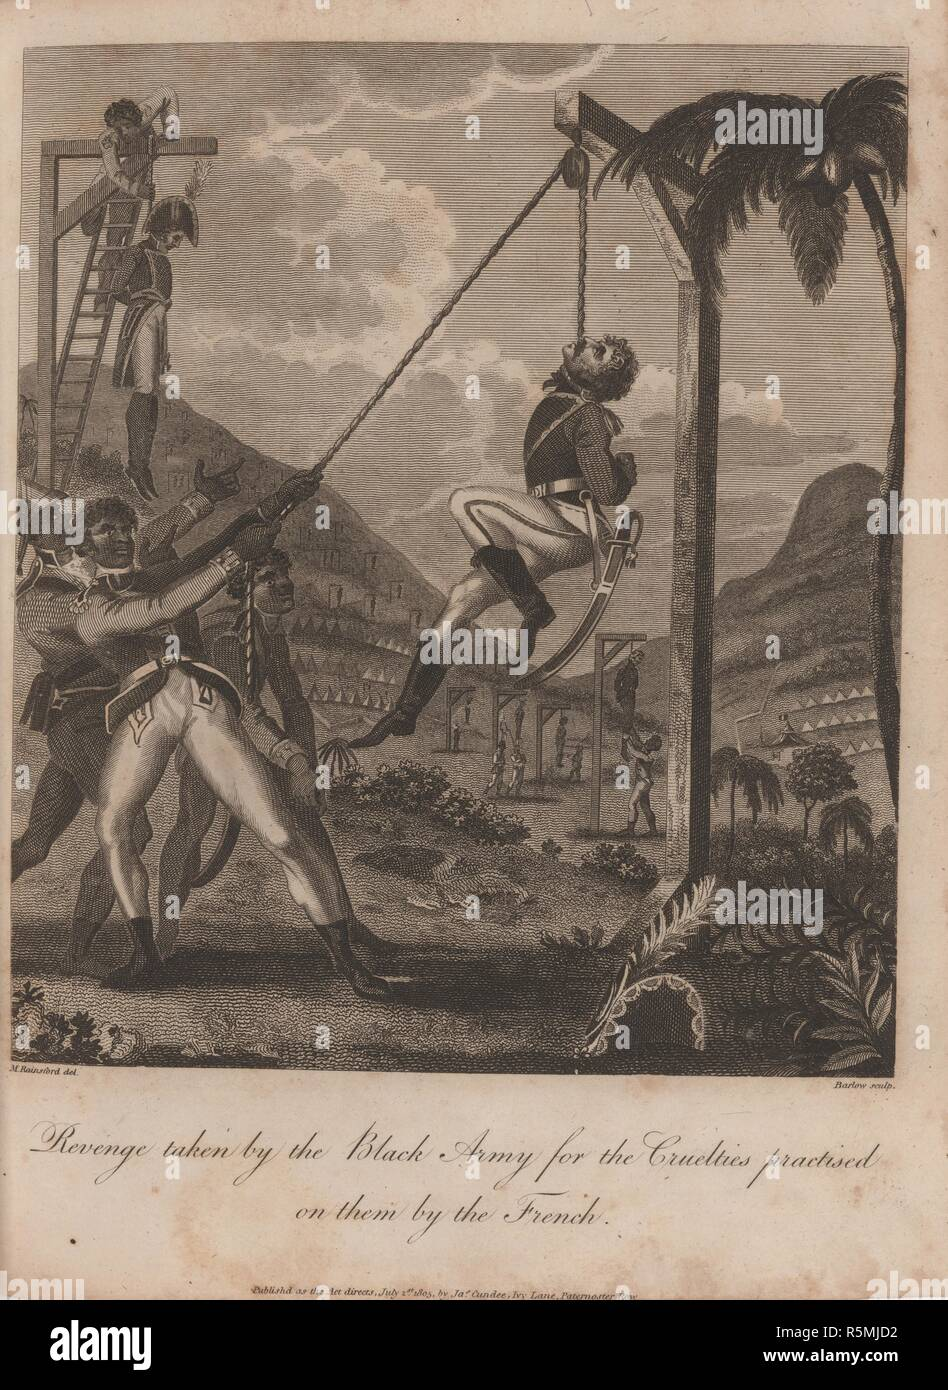 Opinion, interesting haitian revolution slaves sorry